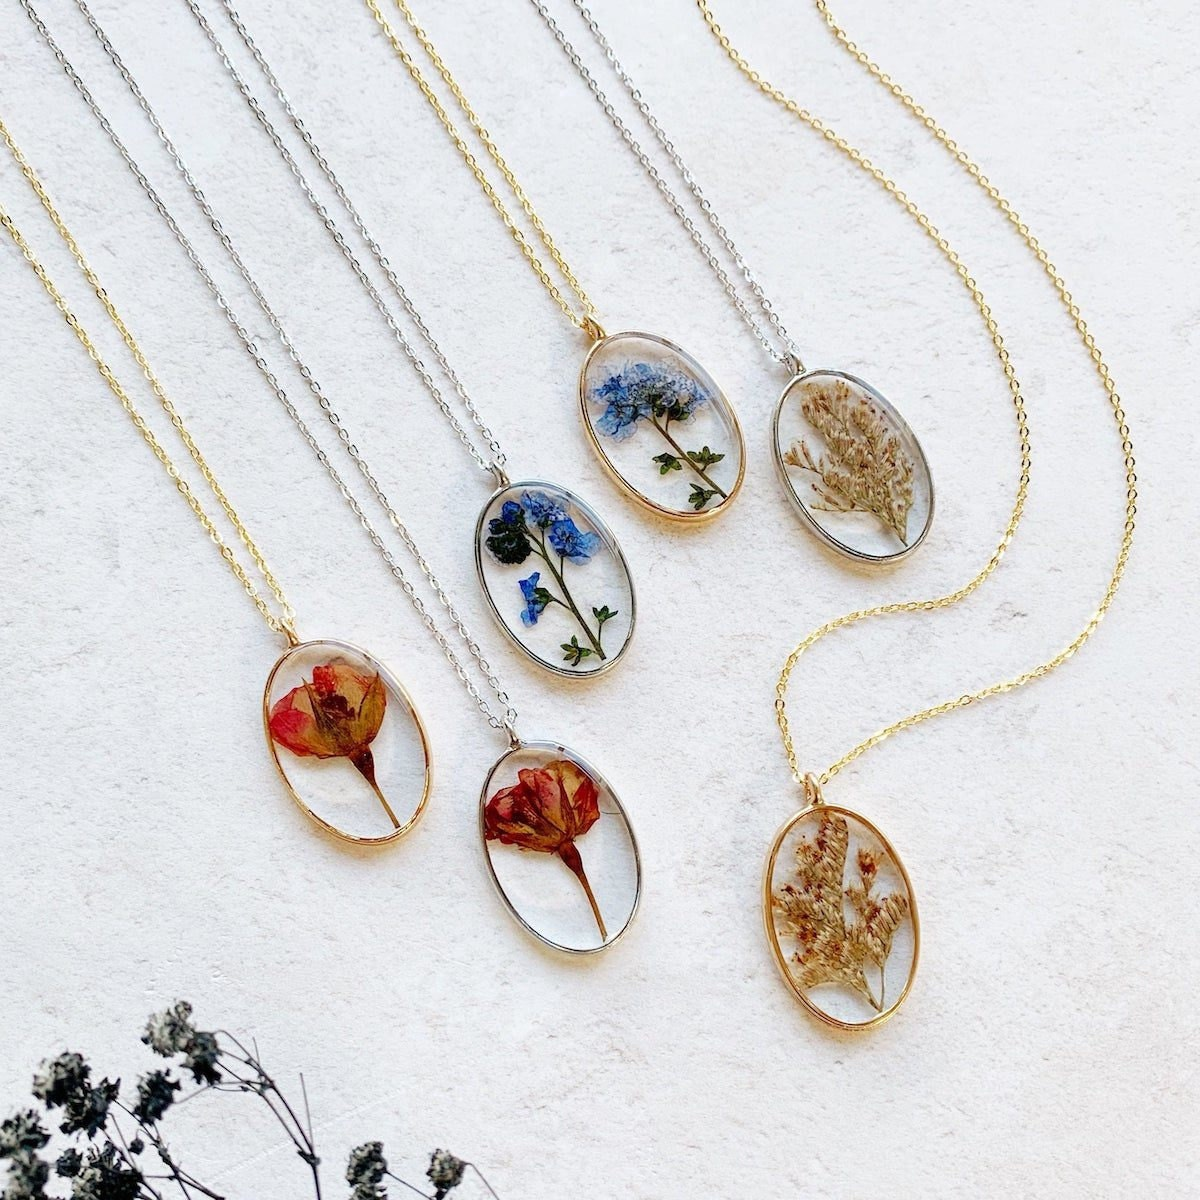 Personalized pressed flower necklace from Eclectic Eccentricity